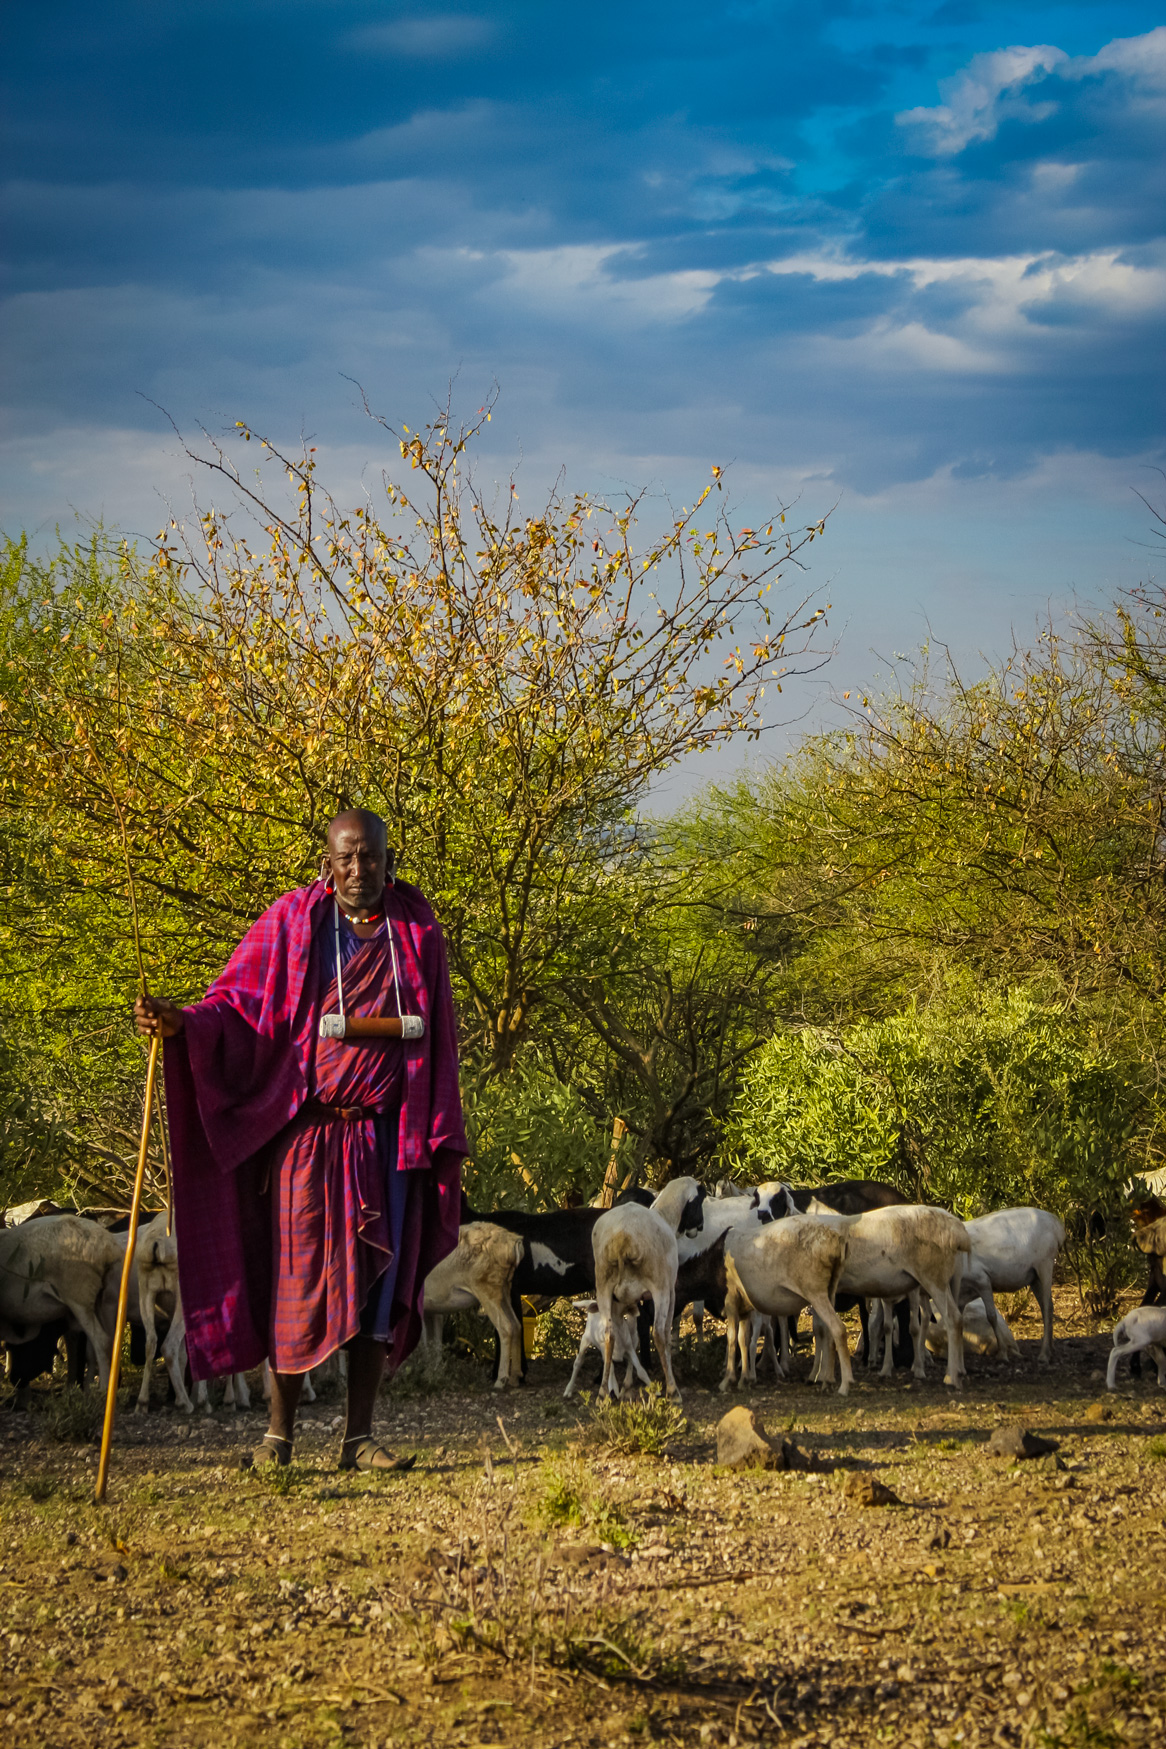 masai chief standing with stick with goats on the Serengeti Tanzania Africa - portrait